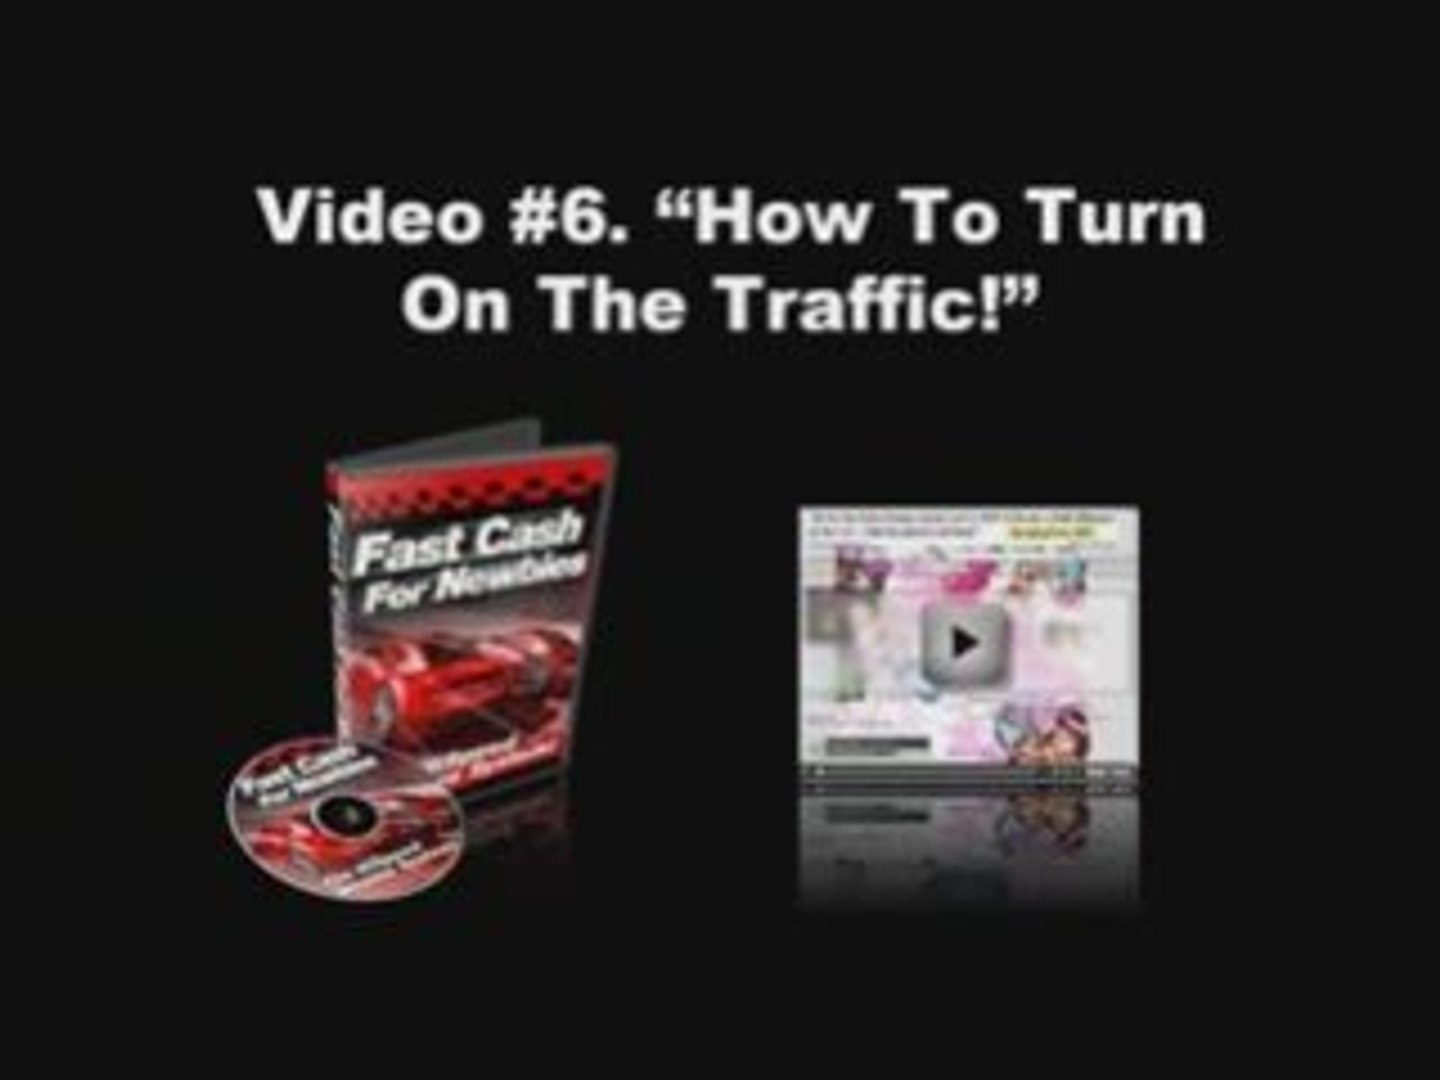 Learn To Make Money from Home with Super Fast Cash 4 Newbies